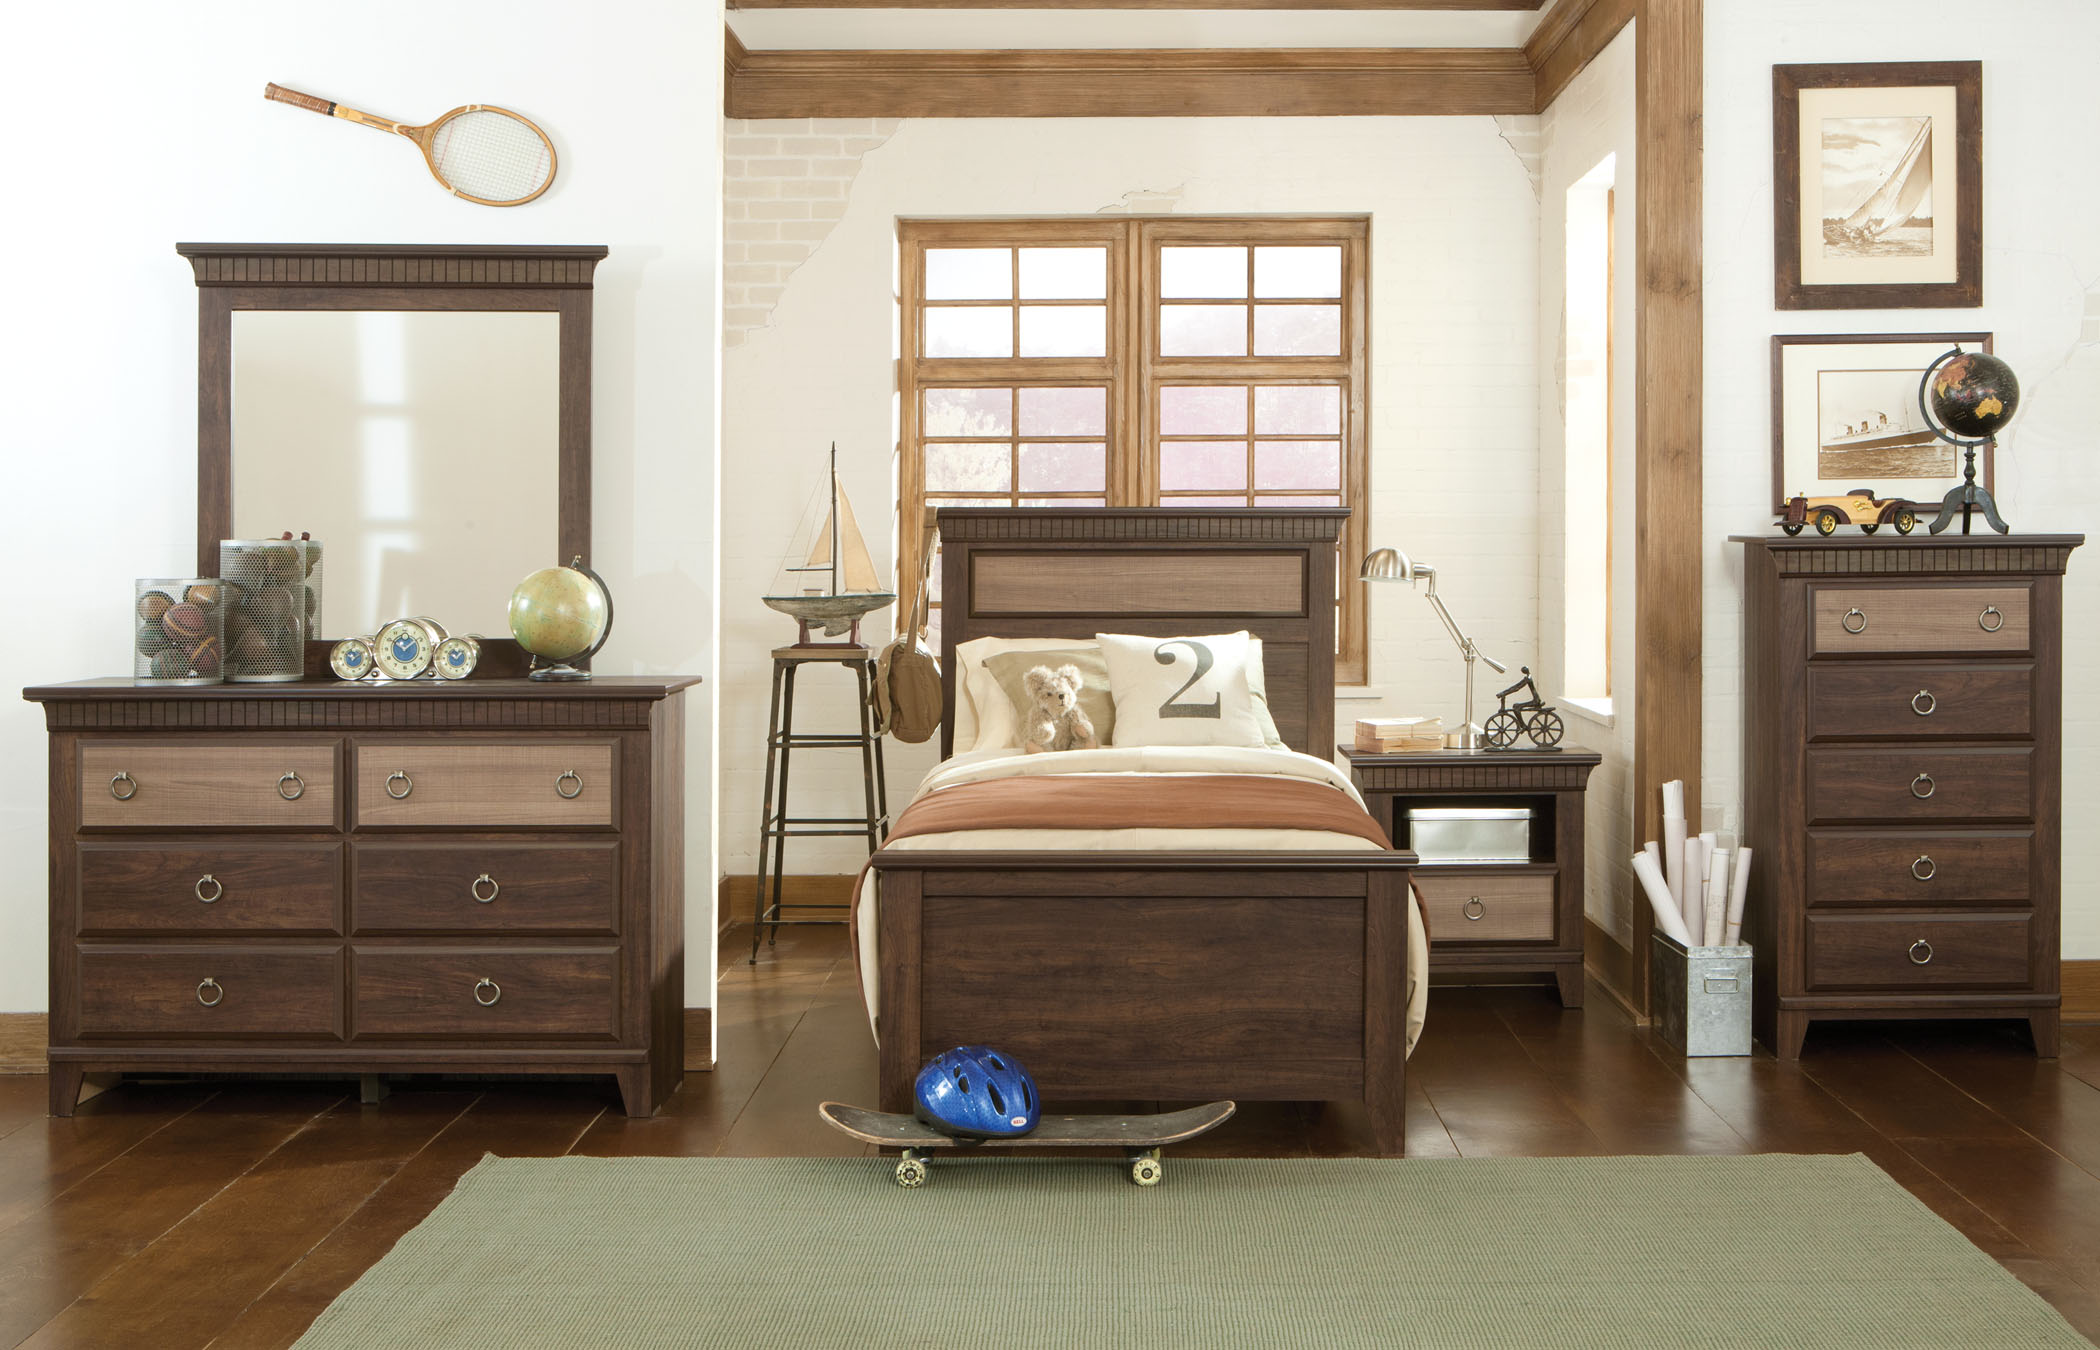 Standard Furniture Youth Bedroom Weatherly 68150  Home